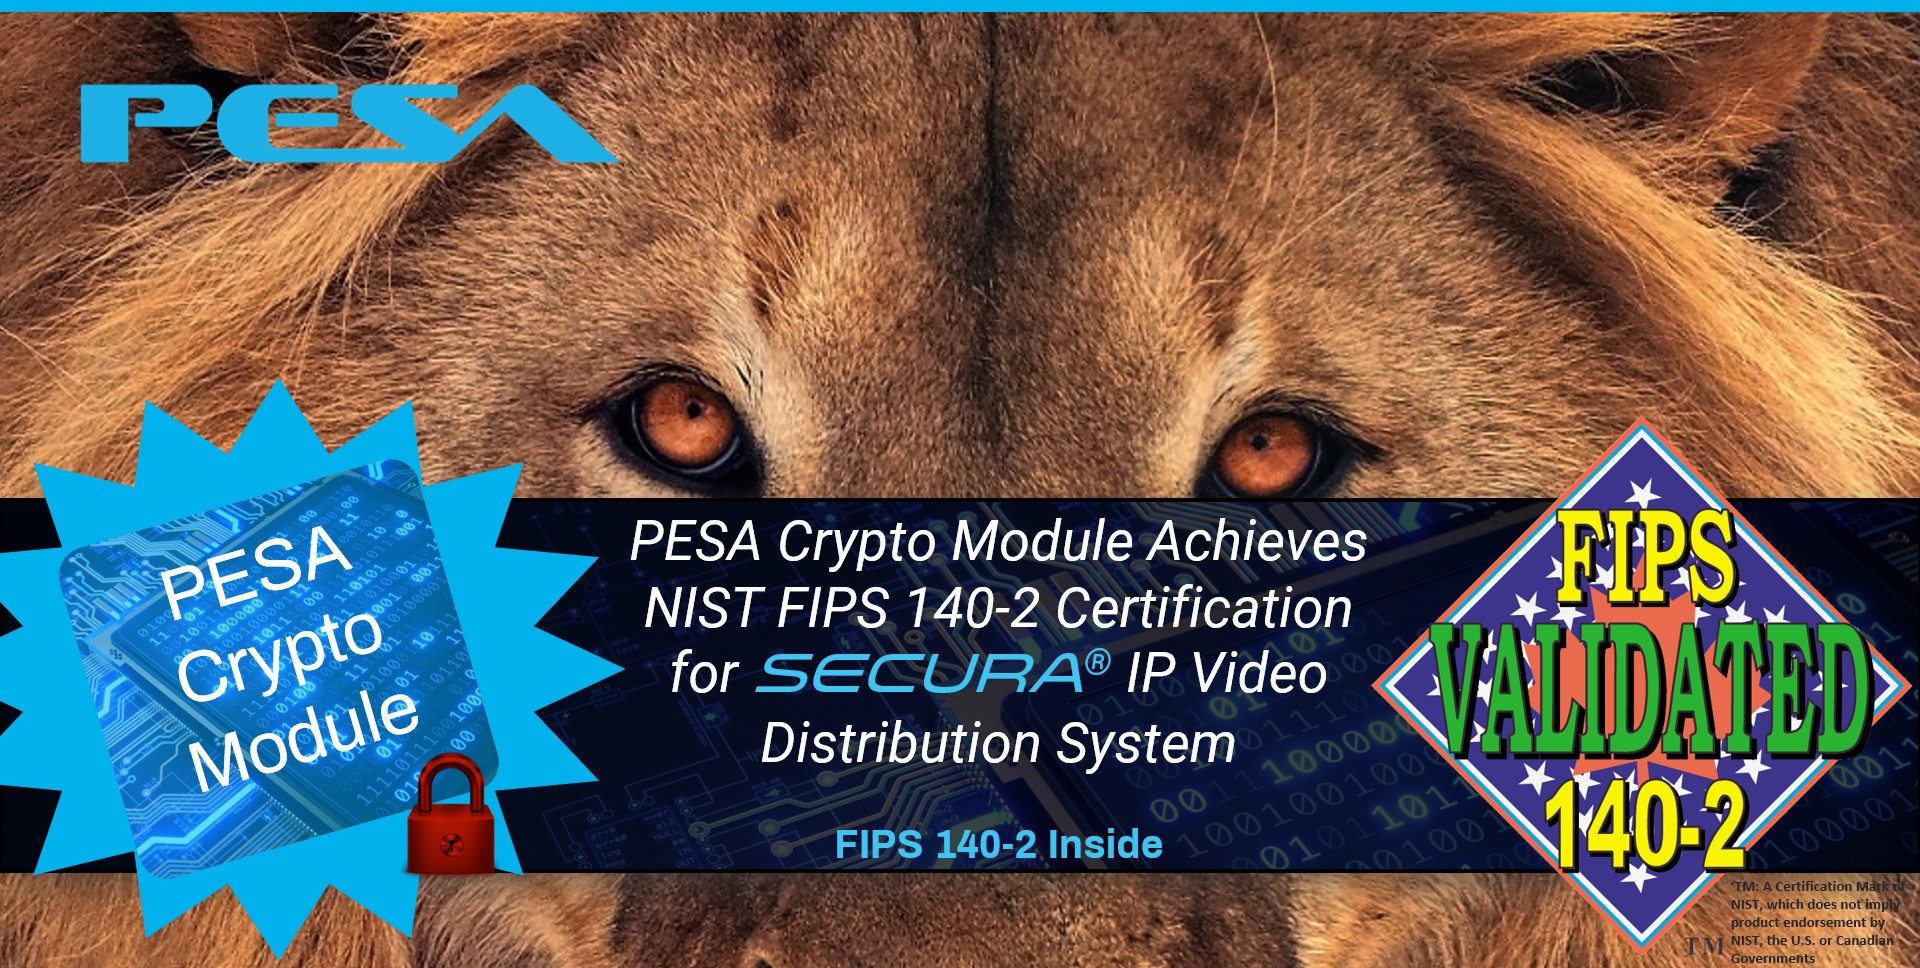 PESA Crypto Module Achieves NIST FIPS 140-2 Certification for Secura IP Video Distribution System